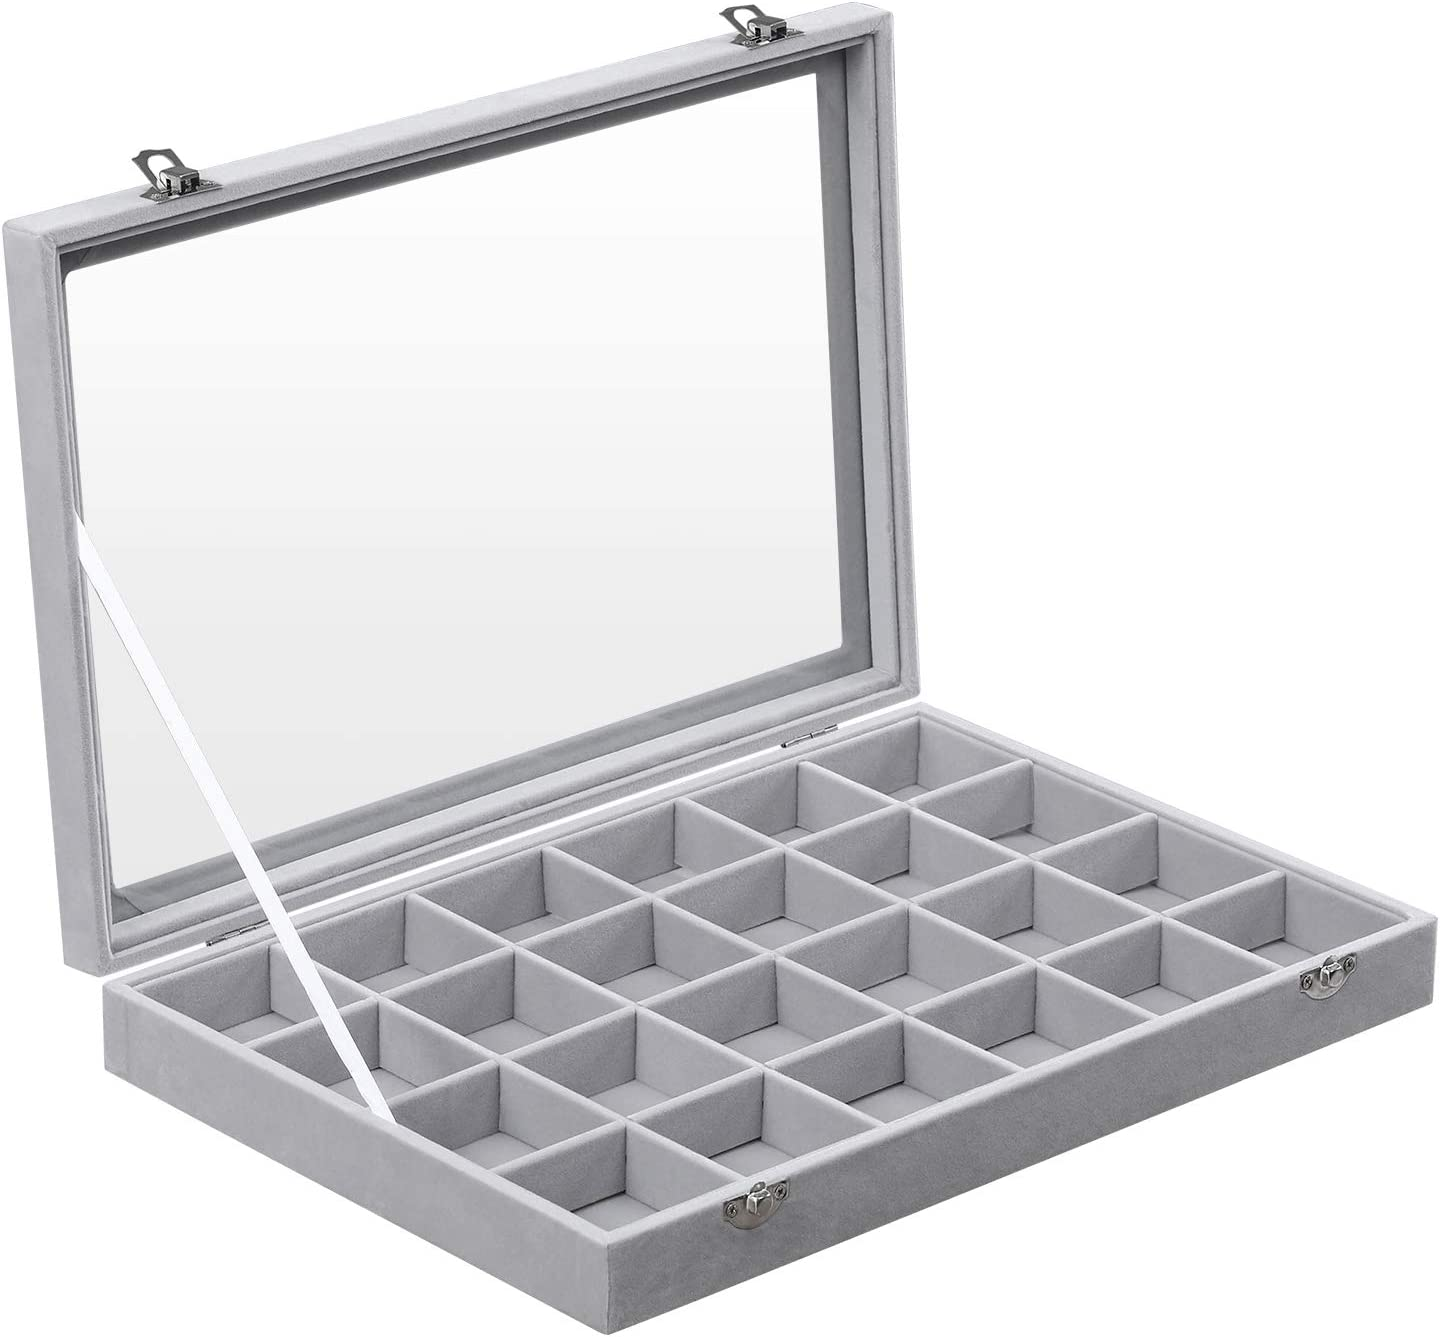 SONGMICS Jewelry Box and Display Case with a Glass Window and 24 Compartments for Earrings, Gray